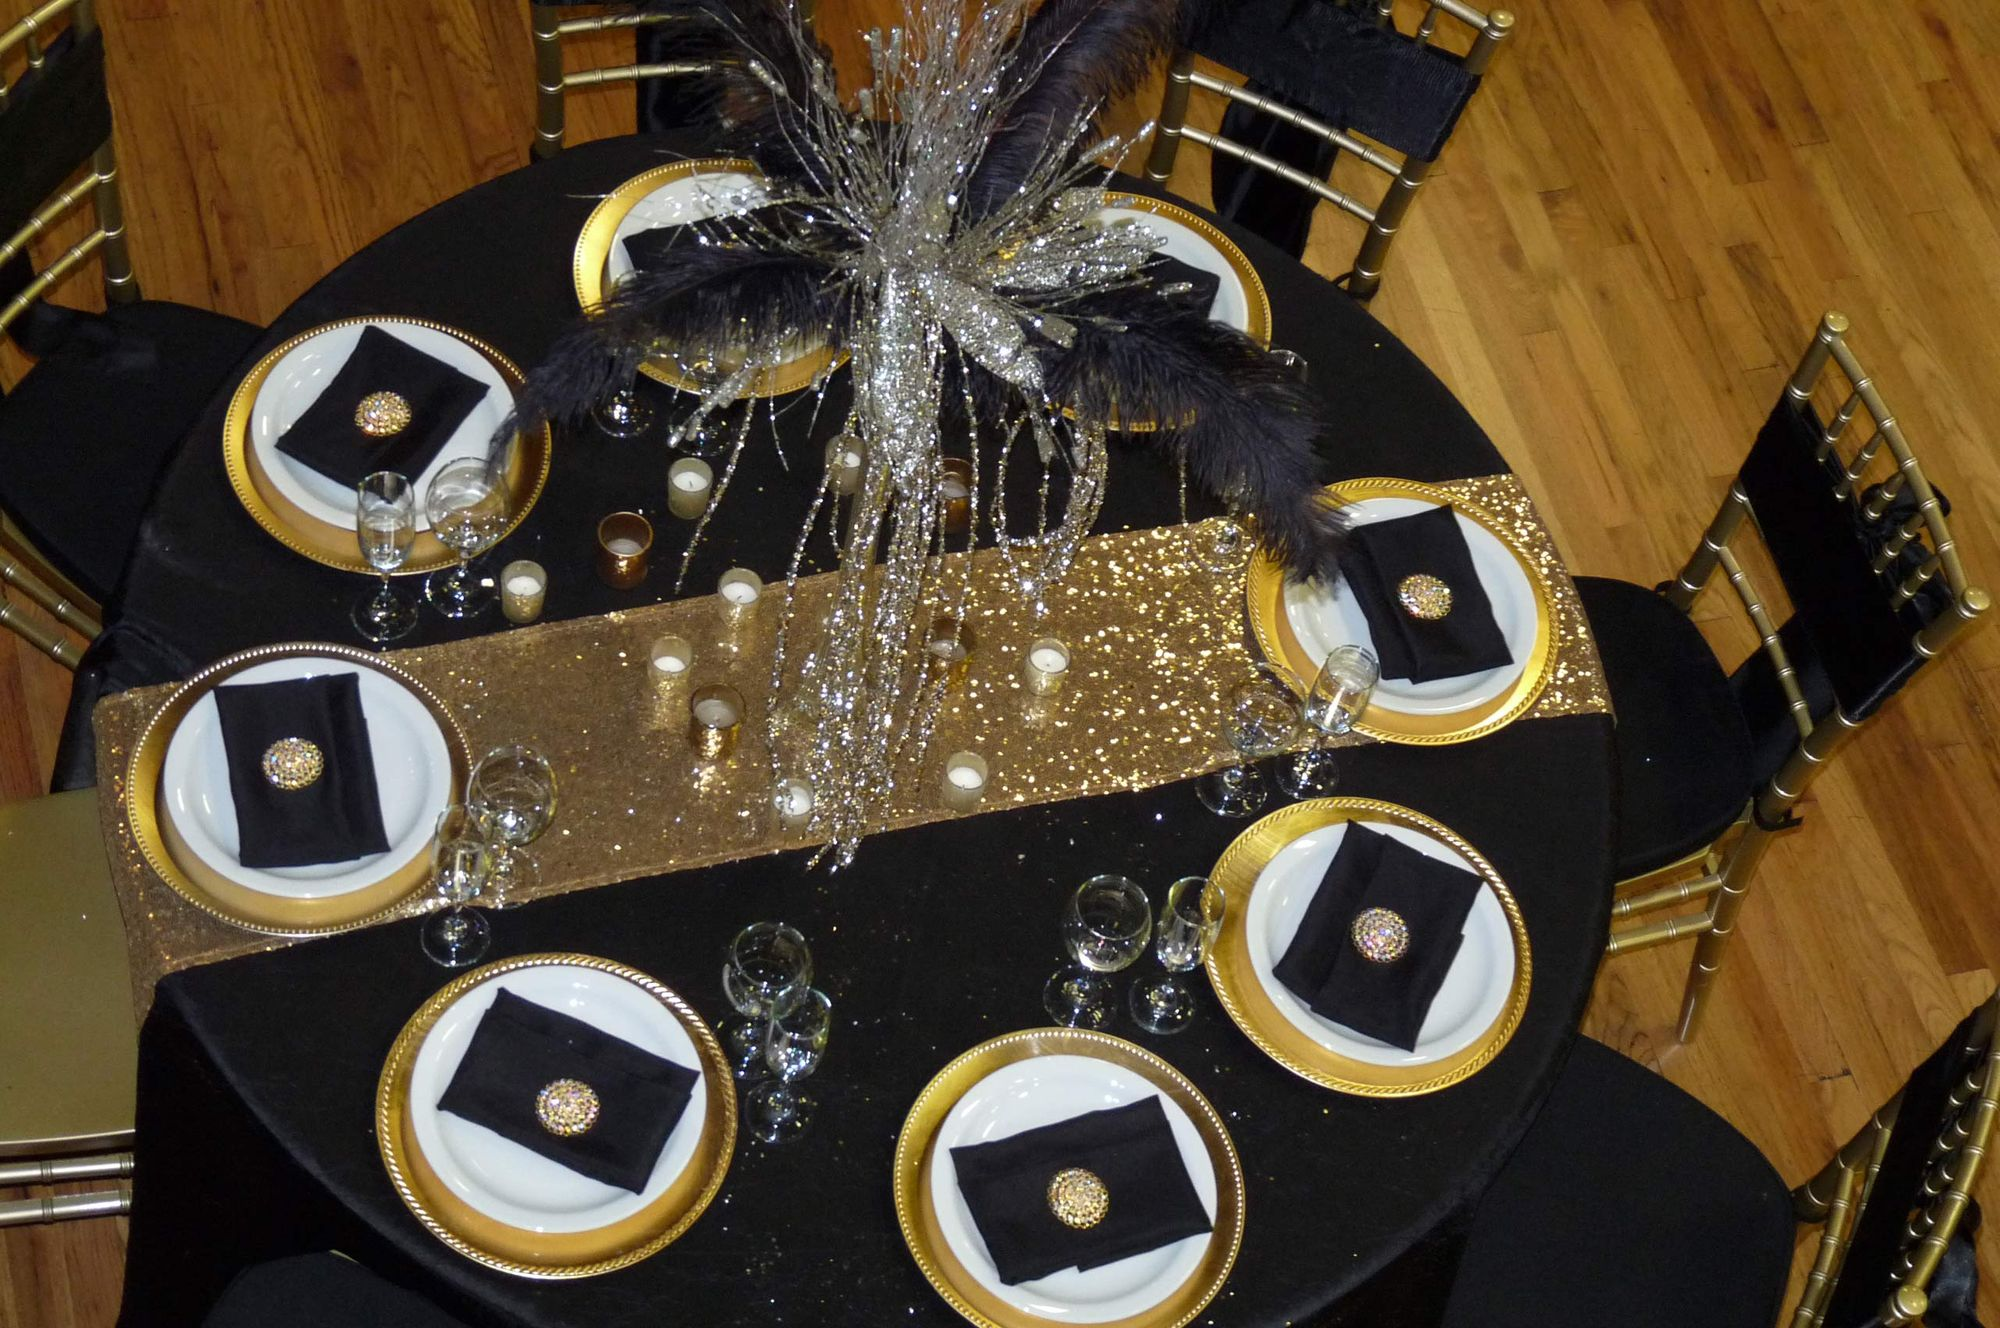 Infinity_Event_Corporate_Holiday_Parties_Gold_Black_Holiday_Decor.jpg